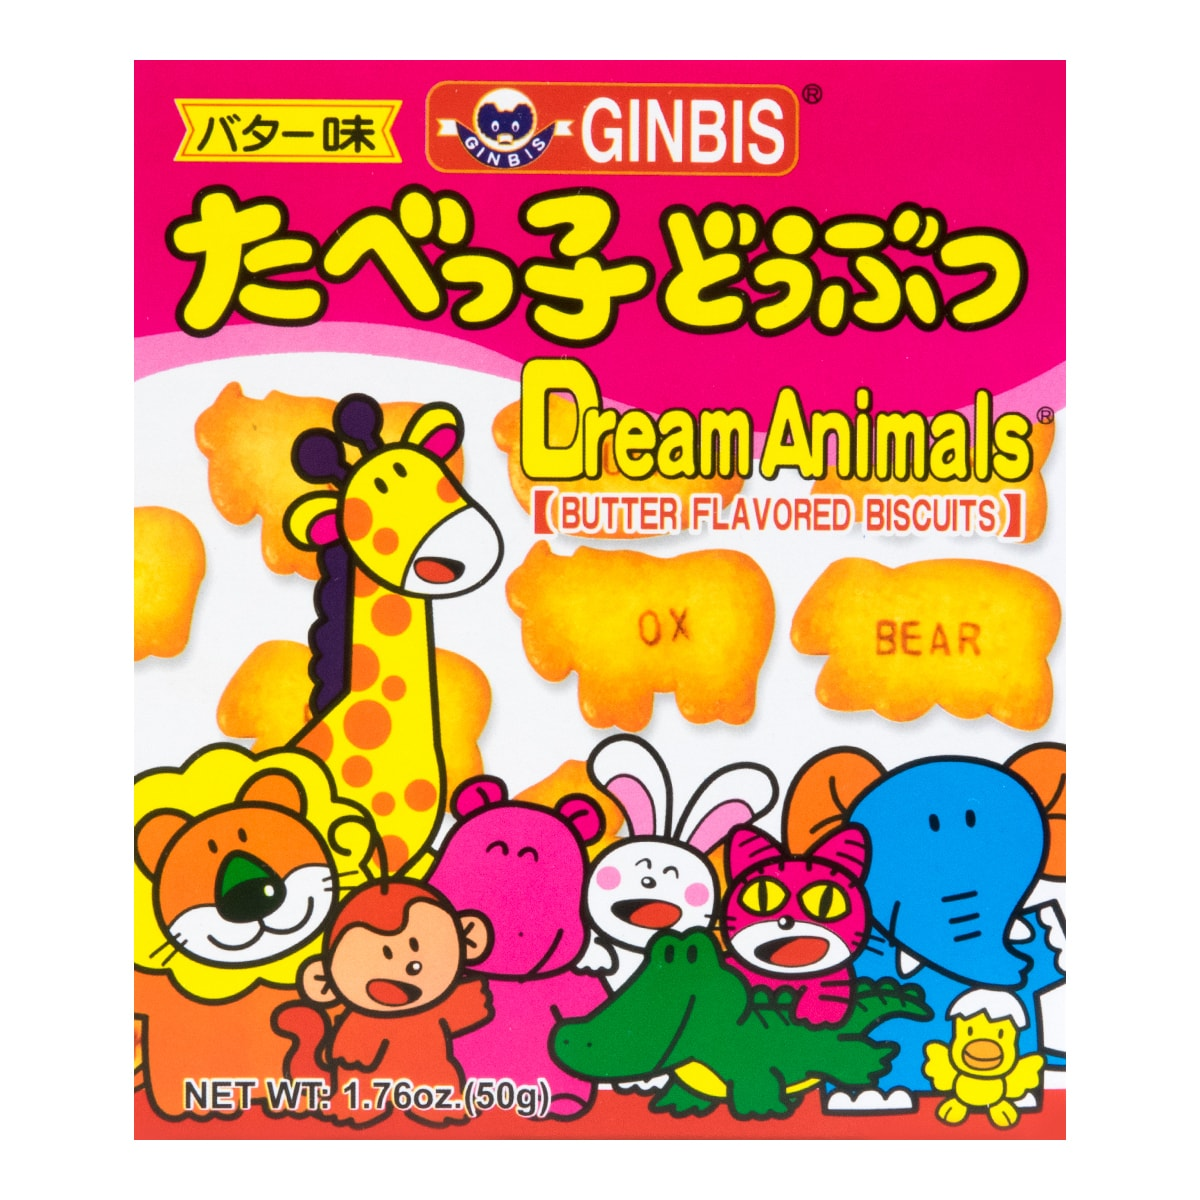 GINBIS Dream Animals Butter Flavored Biscuits 50g